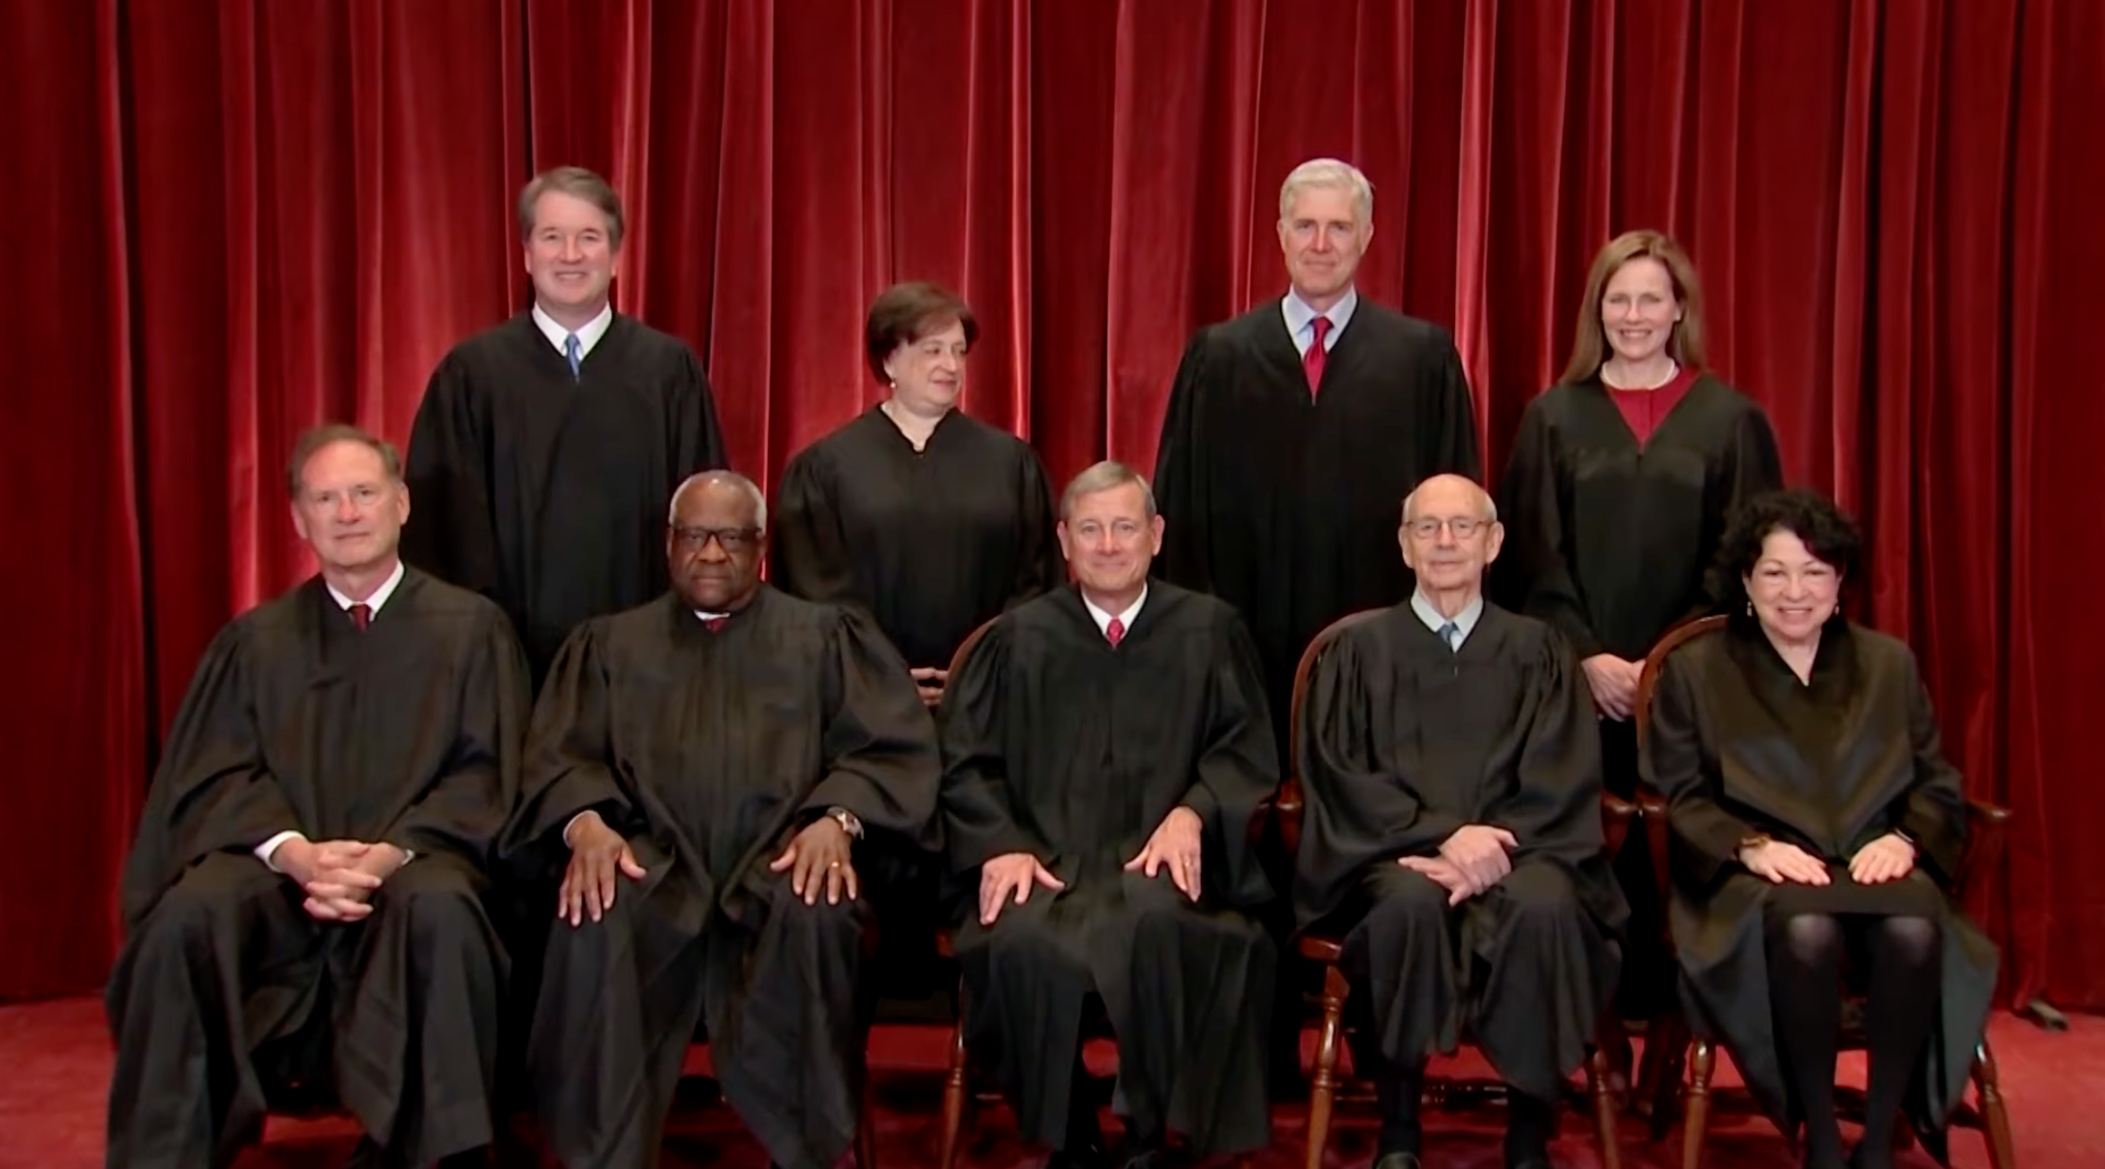 Supreme Court justices pose for their annual photo.